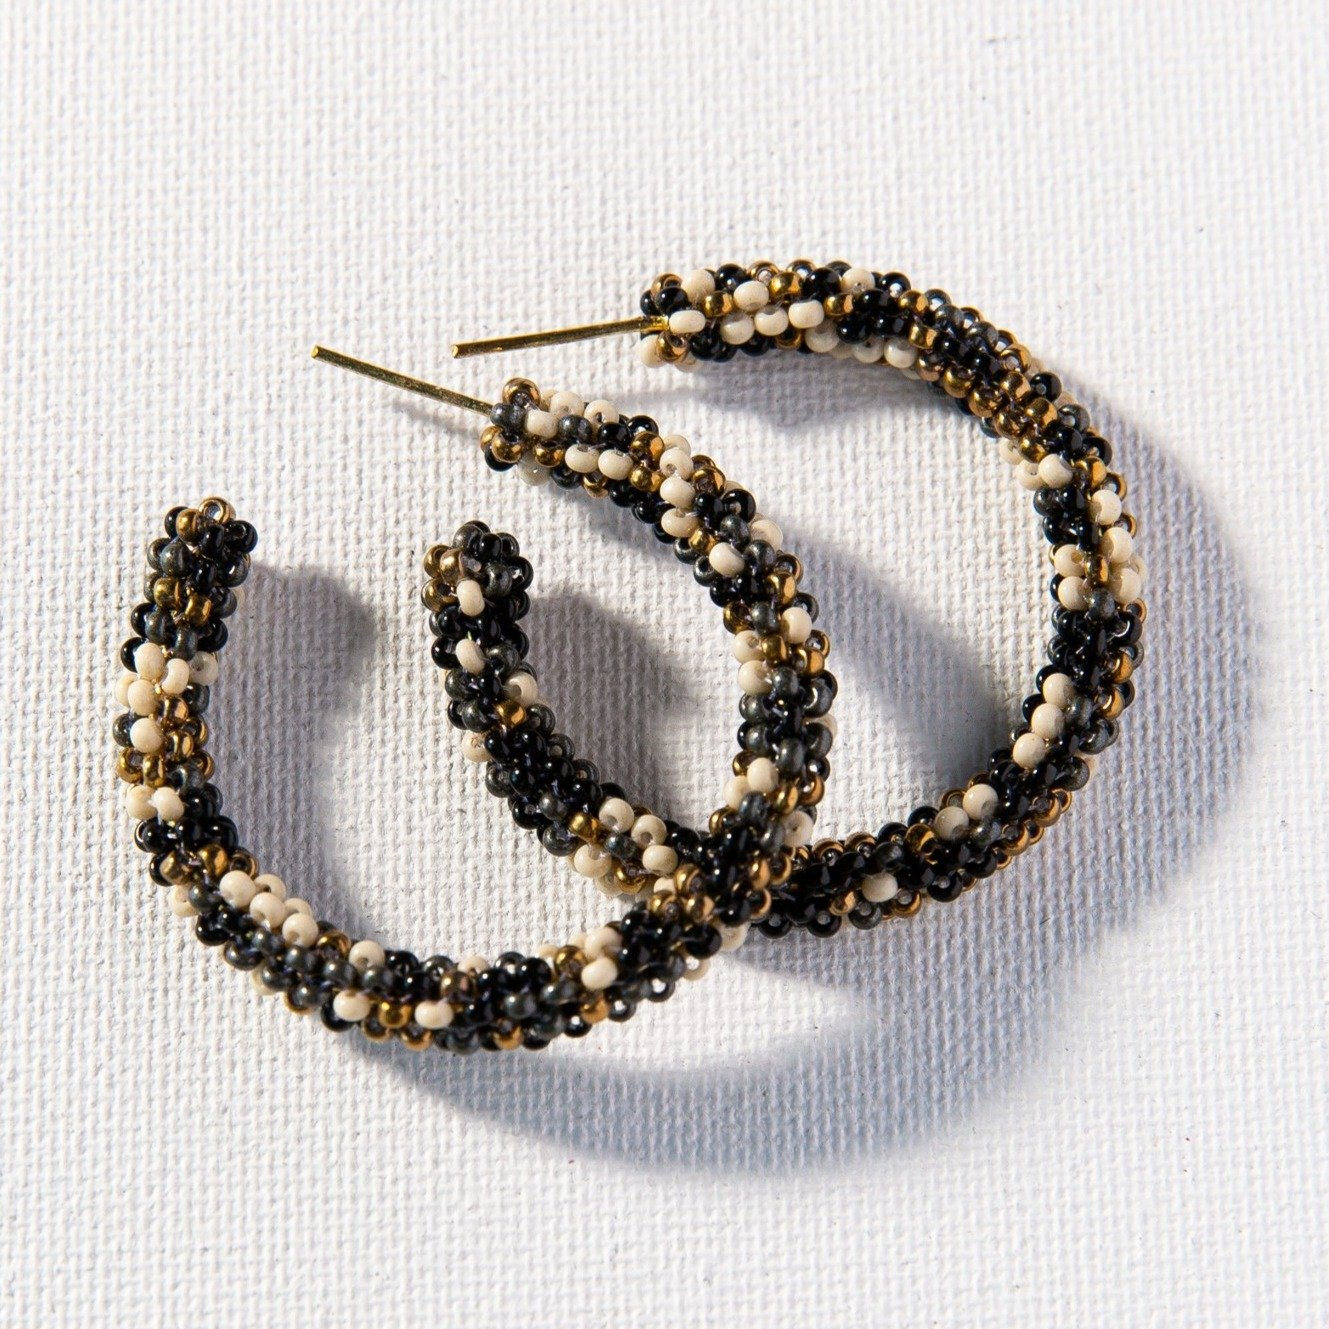 Small Hoop Earrings - Black Confetti